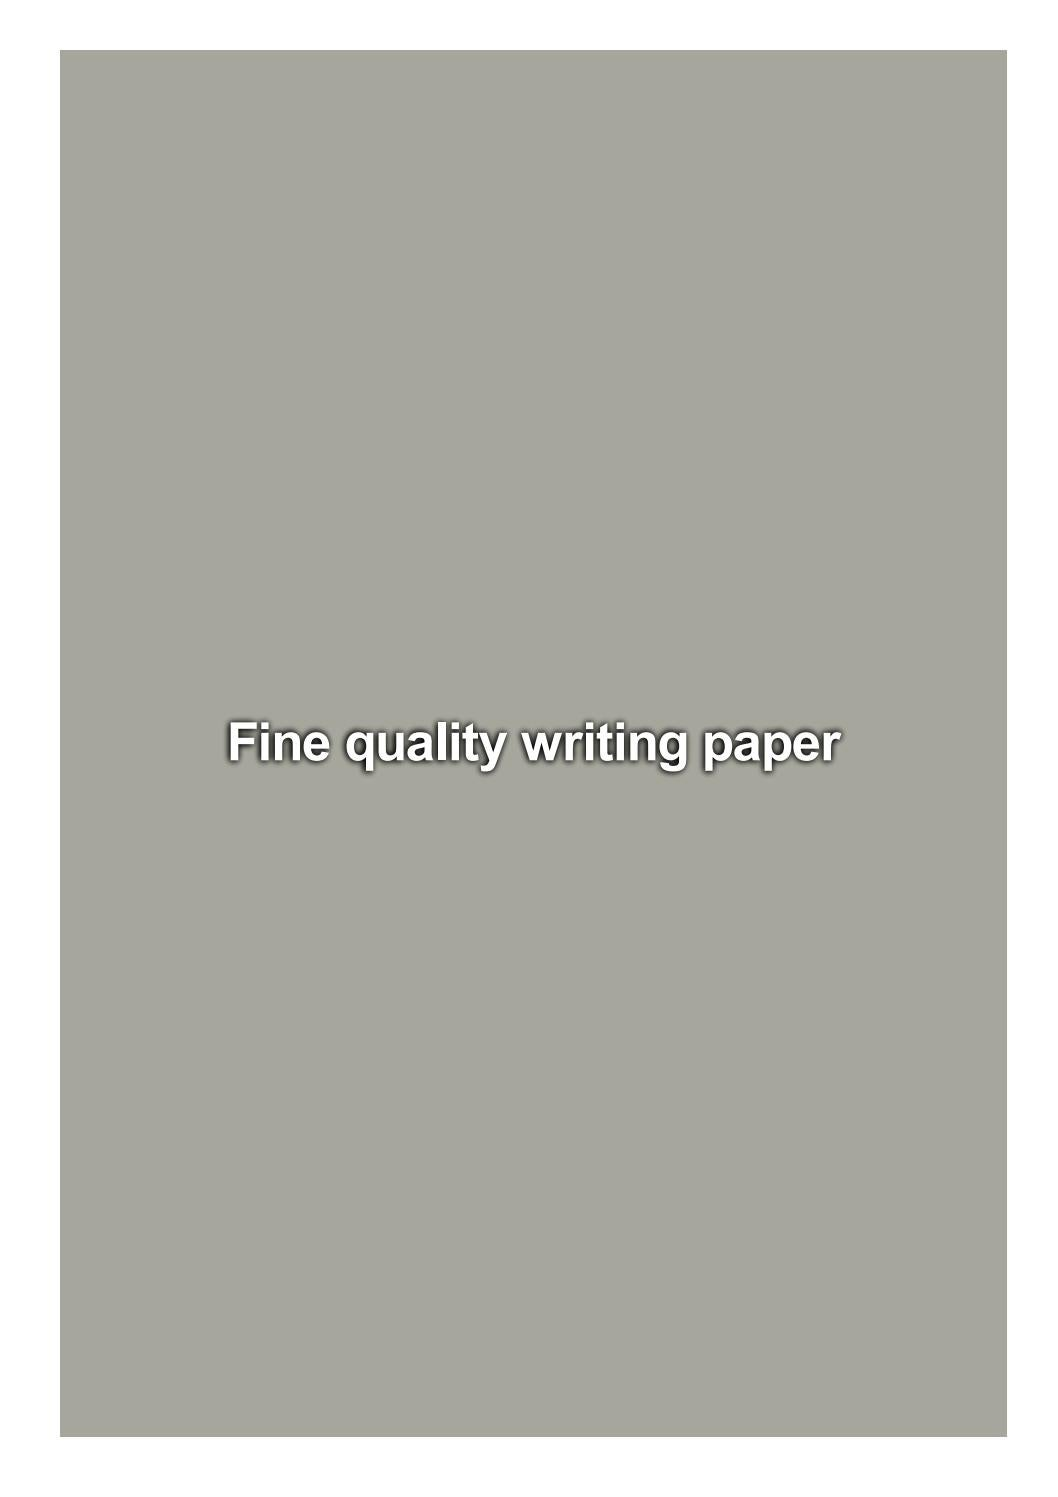 fine quality writing paper